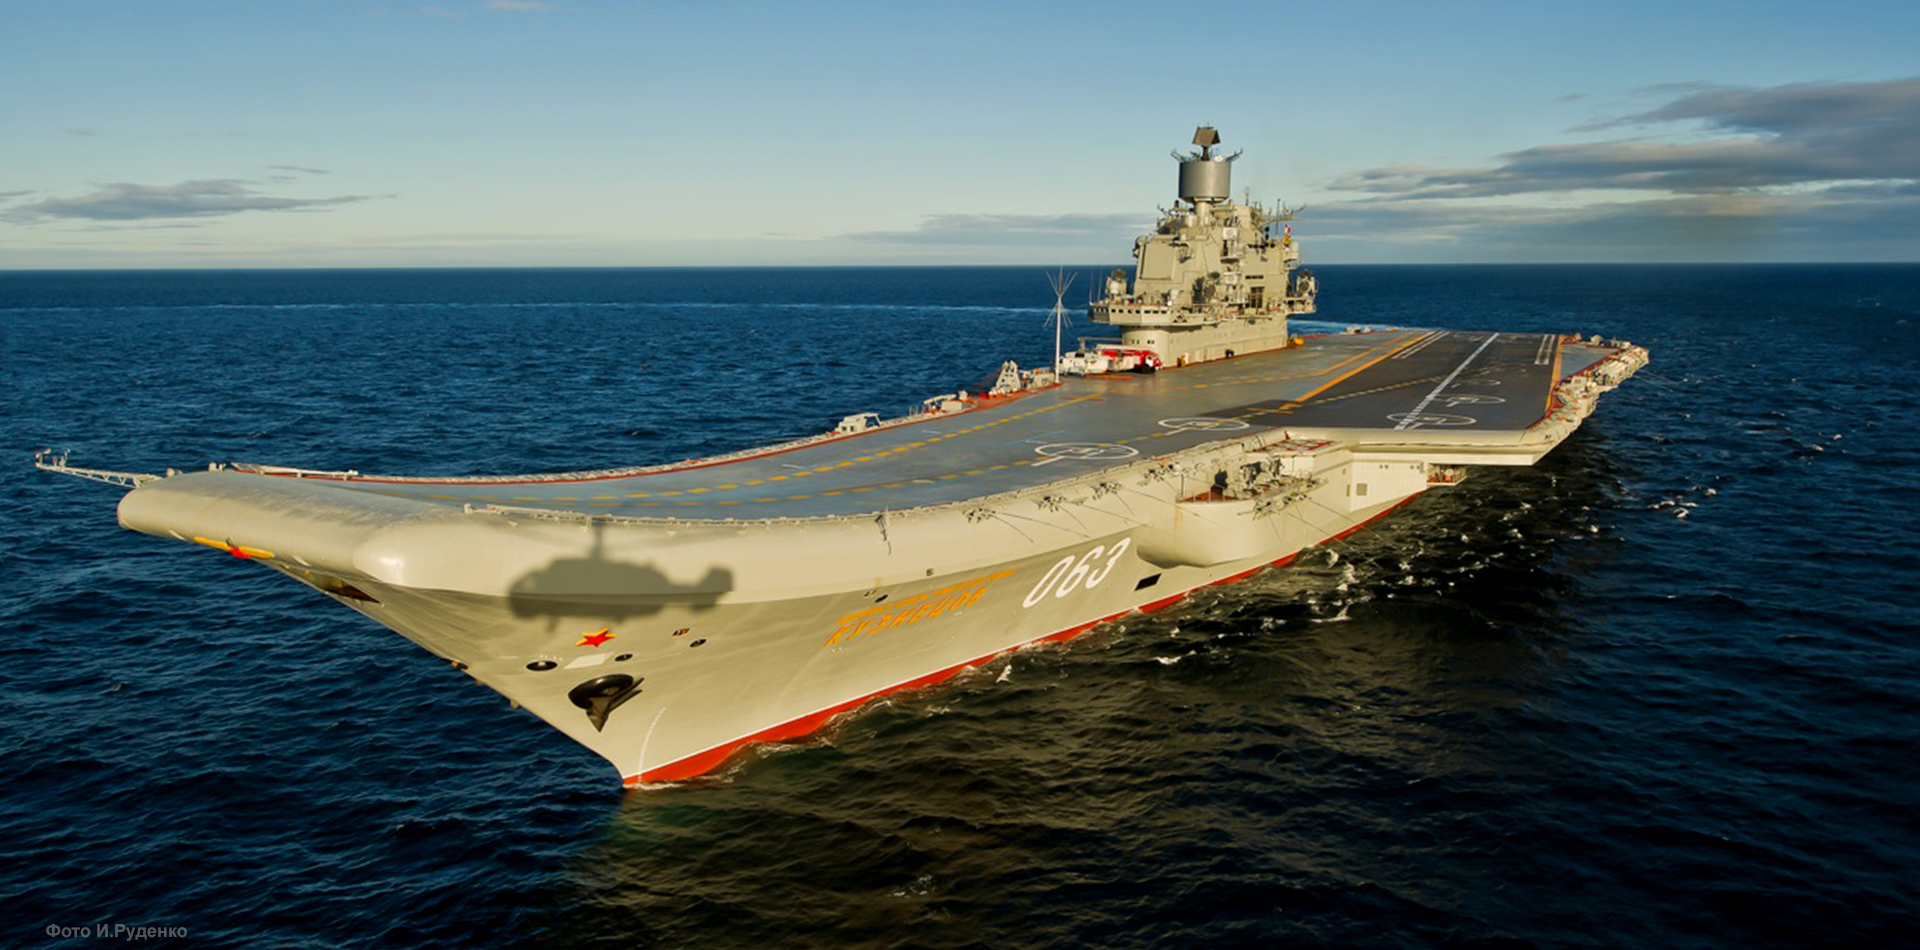 Russia to Send Admiral Kuznetsov Aircraft Carrier to Syrian Shores Next Month